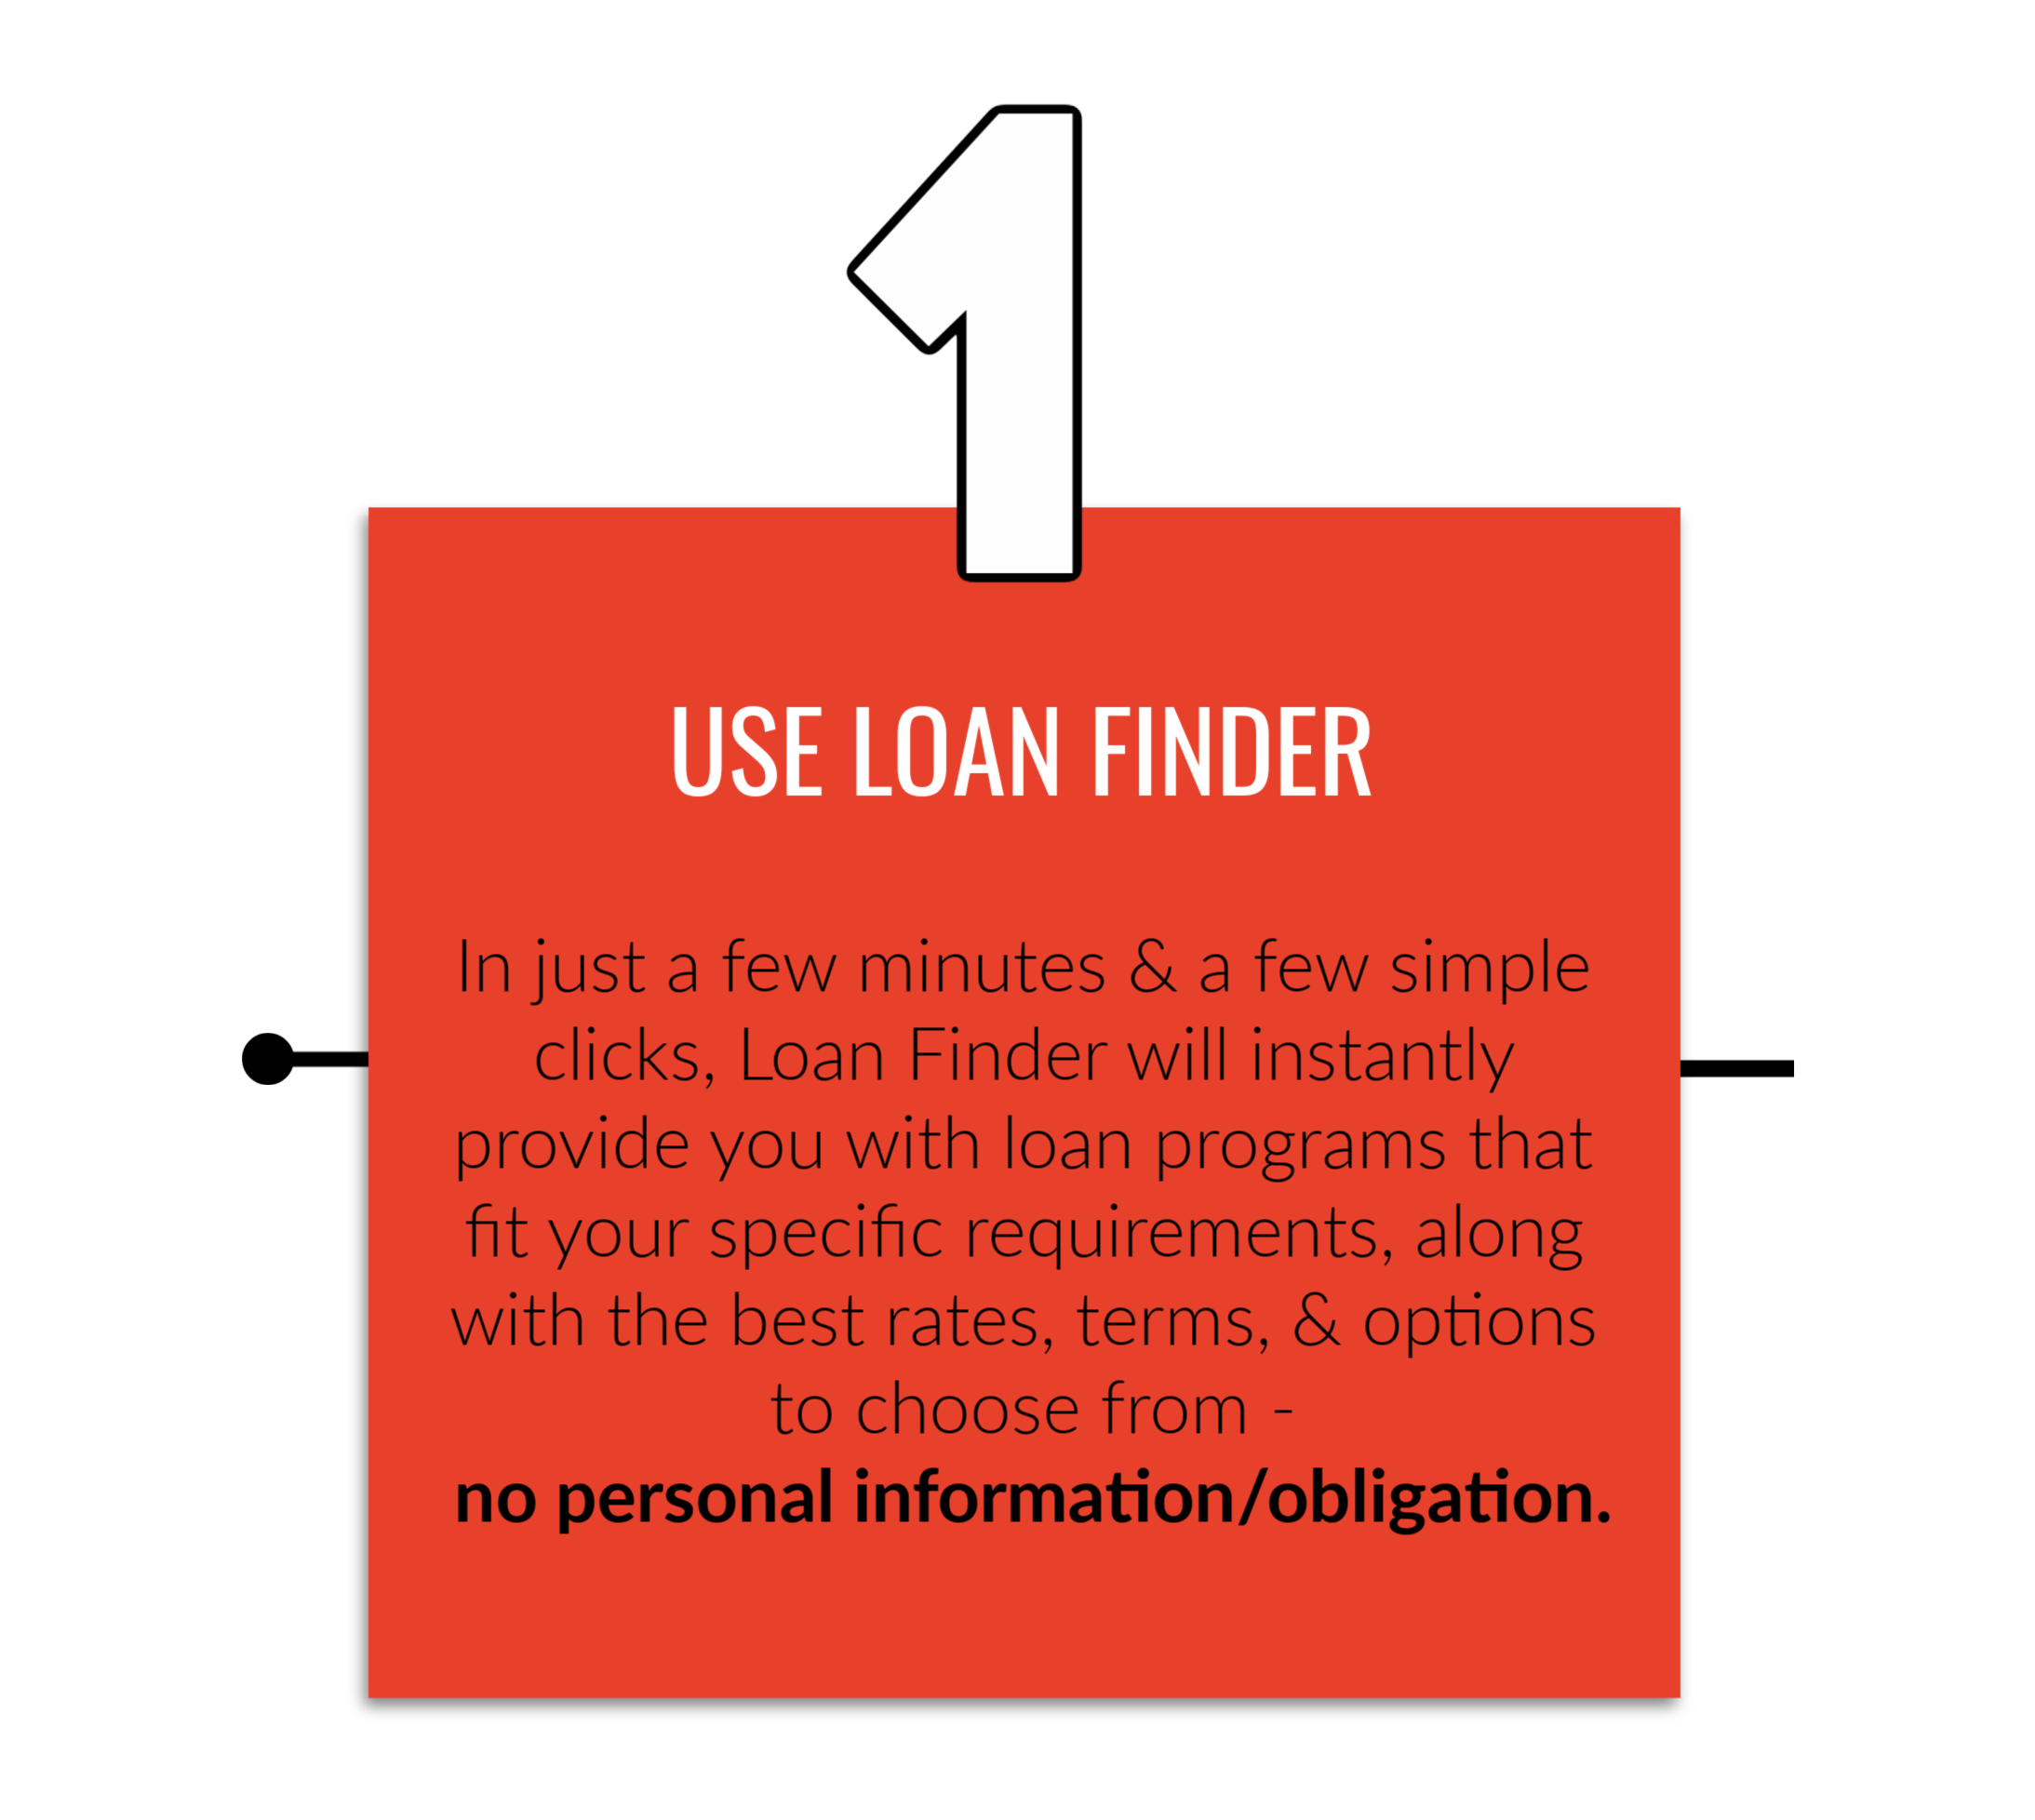 Our Process: Step 1, Use Loan Finder